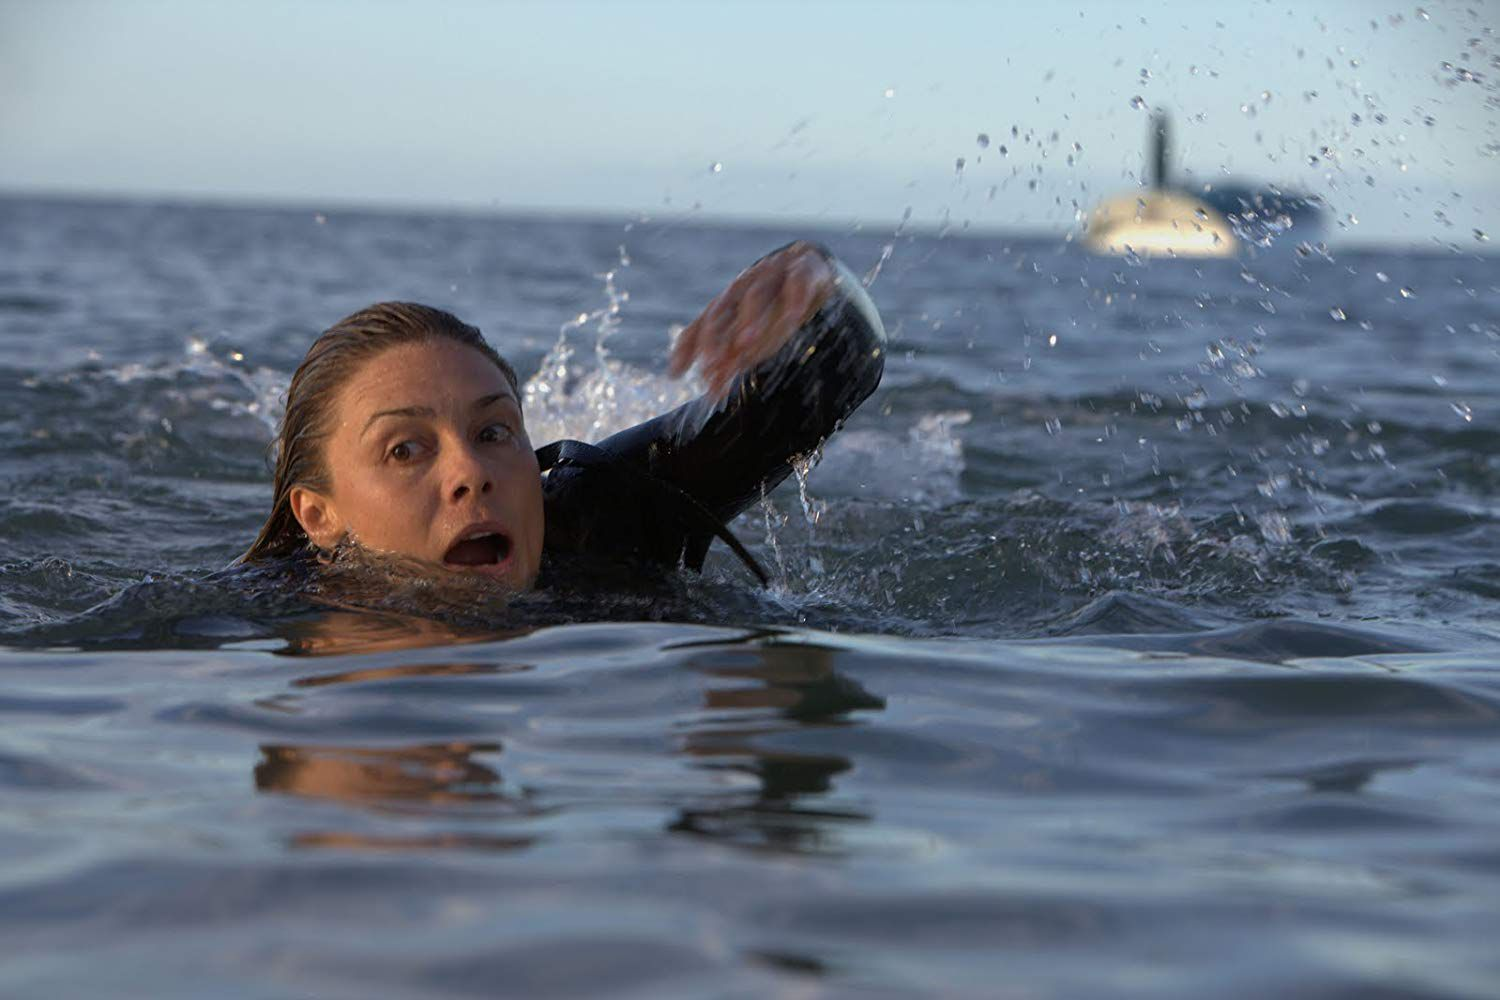 Zoe Naylor in The Reef (2010)